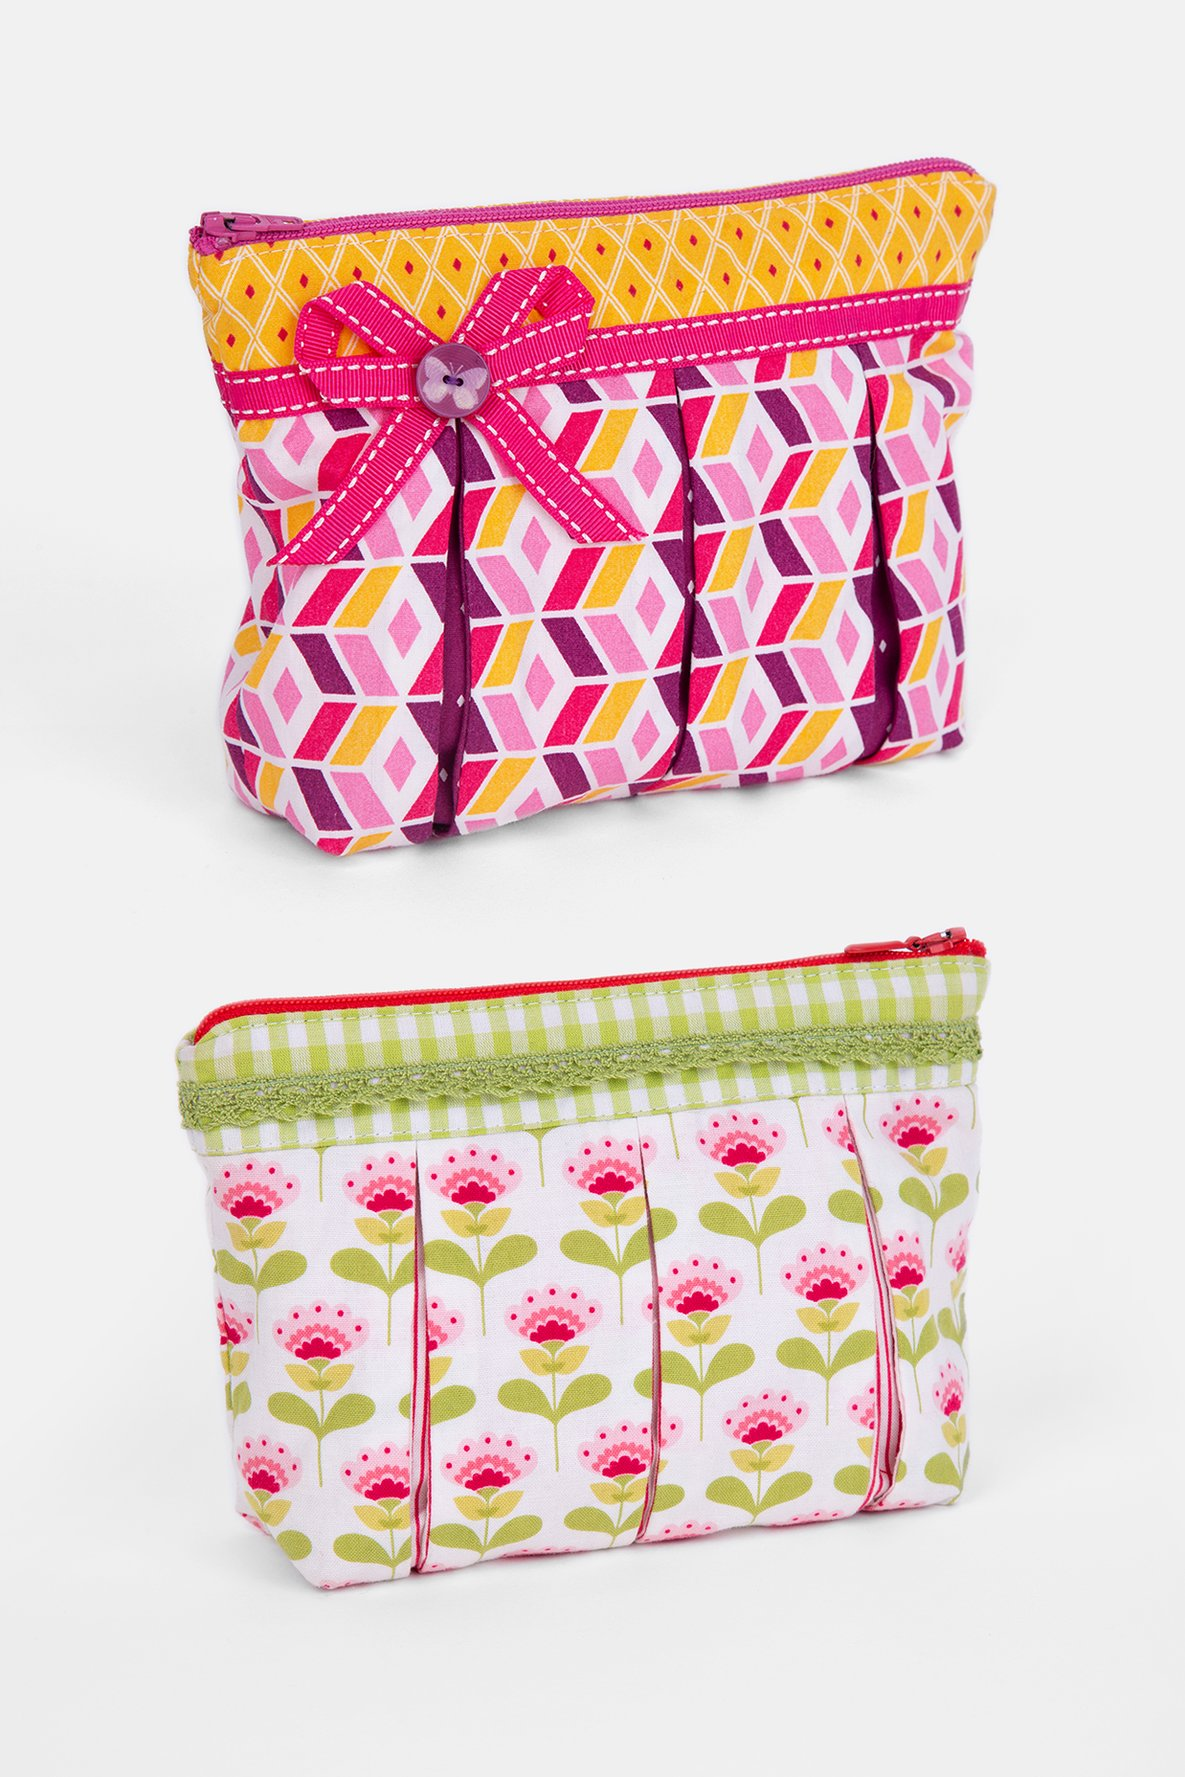 Sewing pattern Zippered Pouch